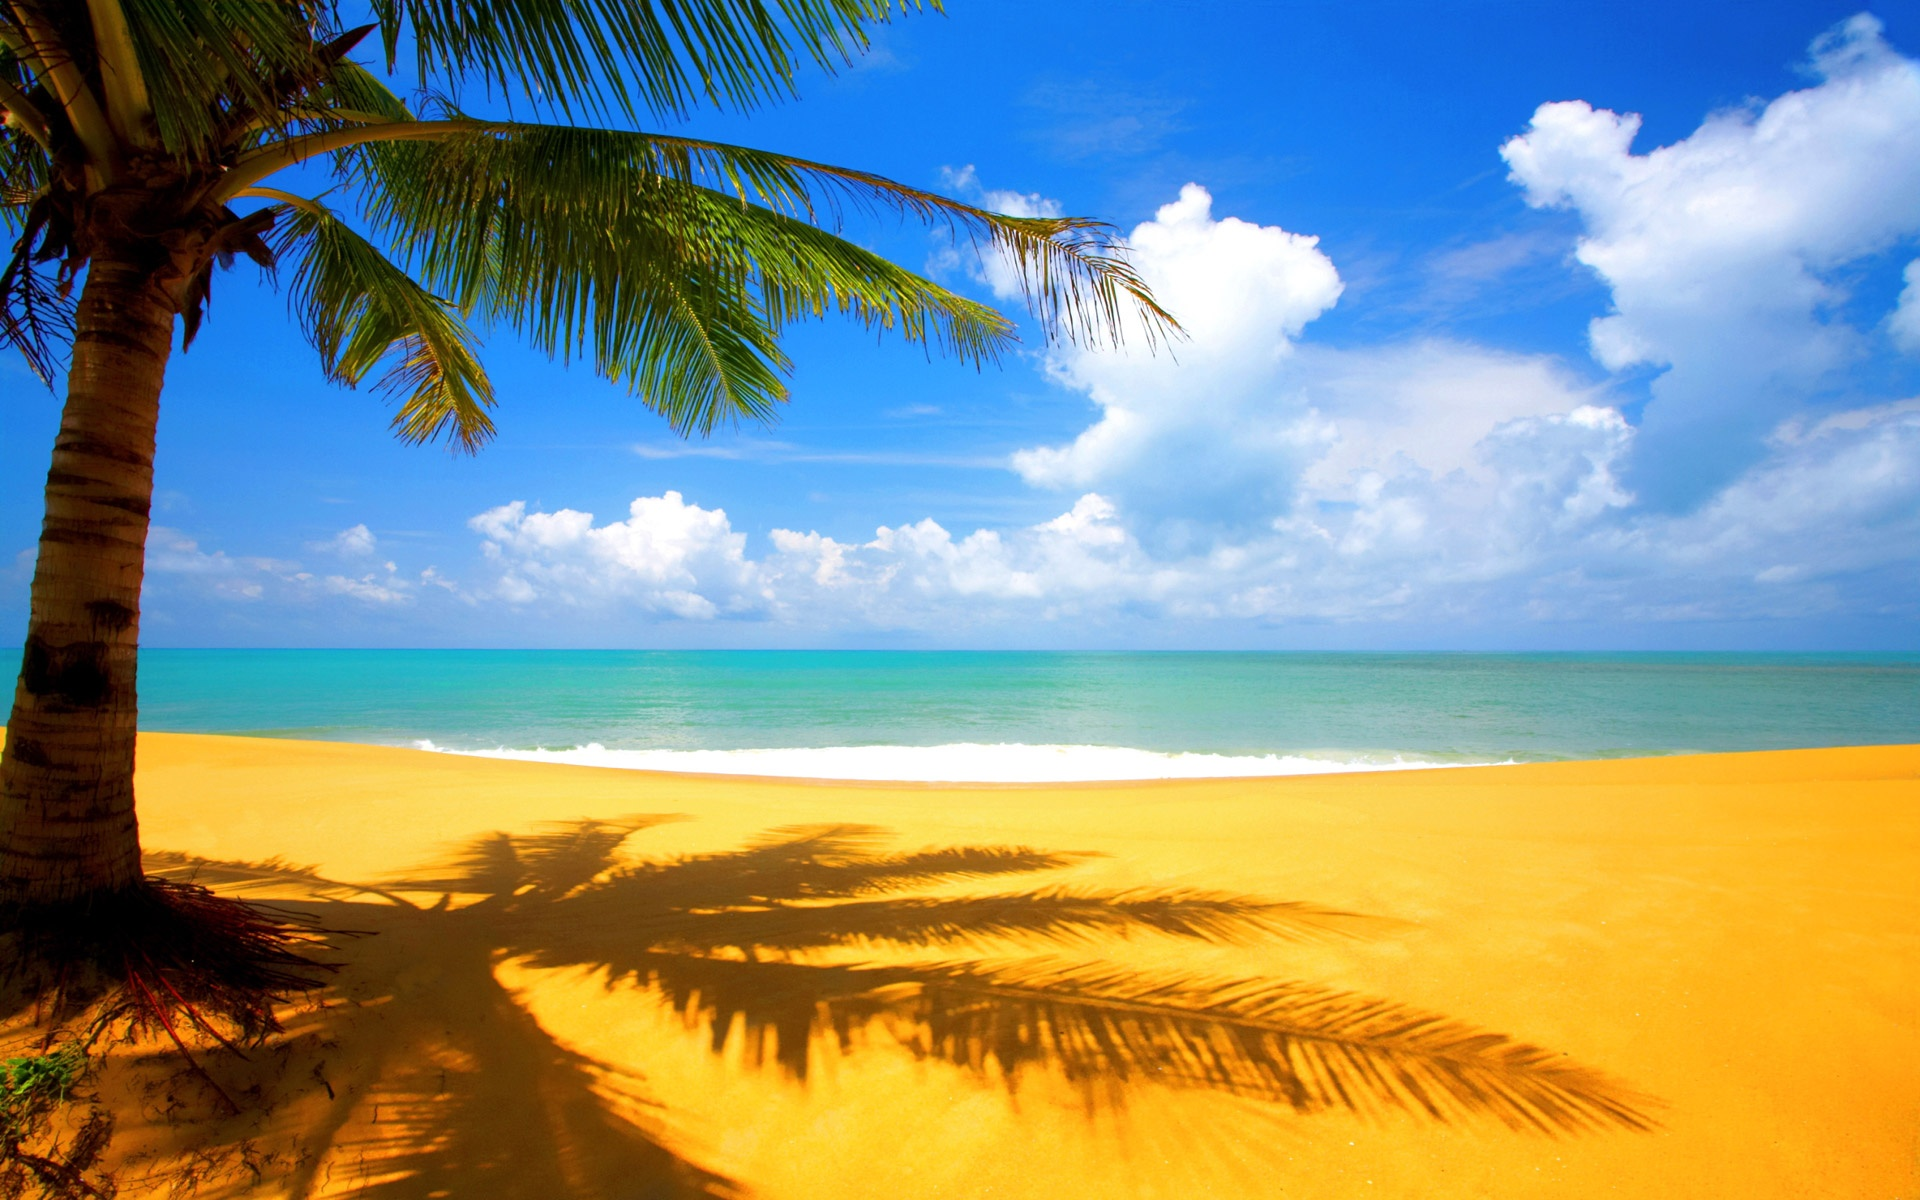 On Golden Sandy Beach 1920x1200 WIDE Wallpaper Sunny Beaches Islands 1920x1200